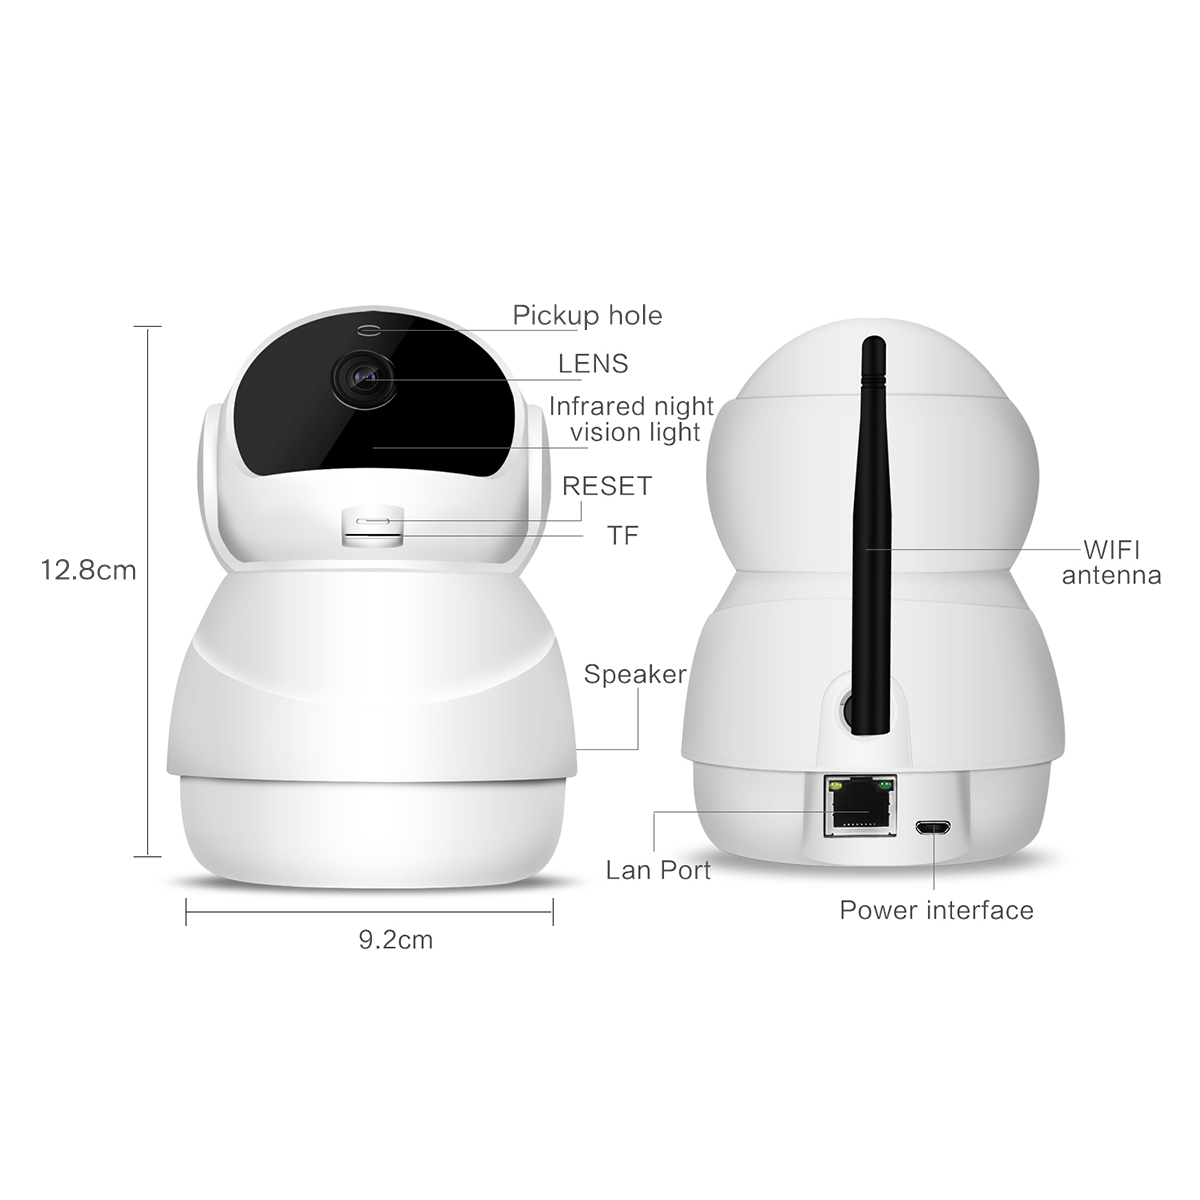 Bakeey 1080P 360 Degree Smart WIFI IP Camera Support Two-way Audio PIR Motion Sensor 4 x Zoom TF Card Storage Baby Monitor